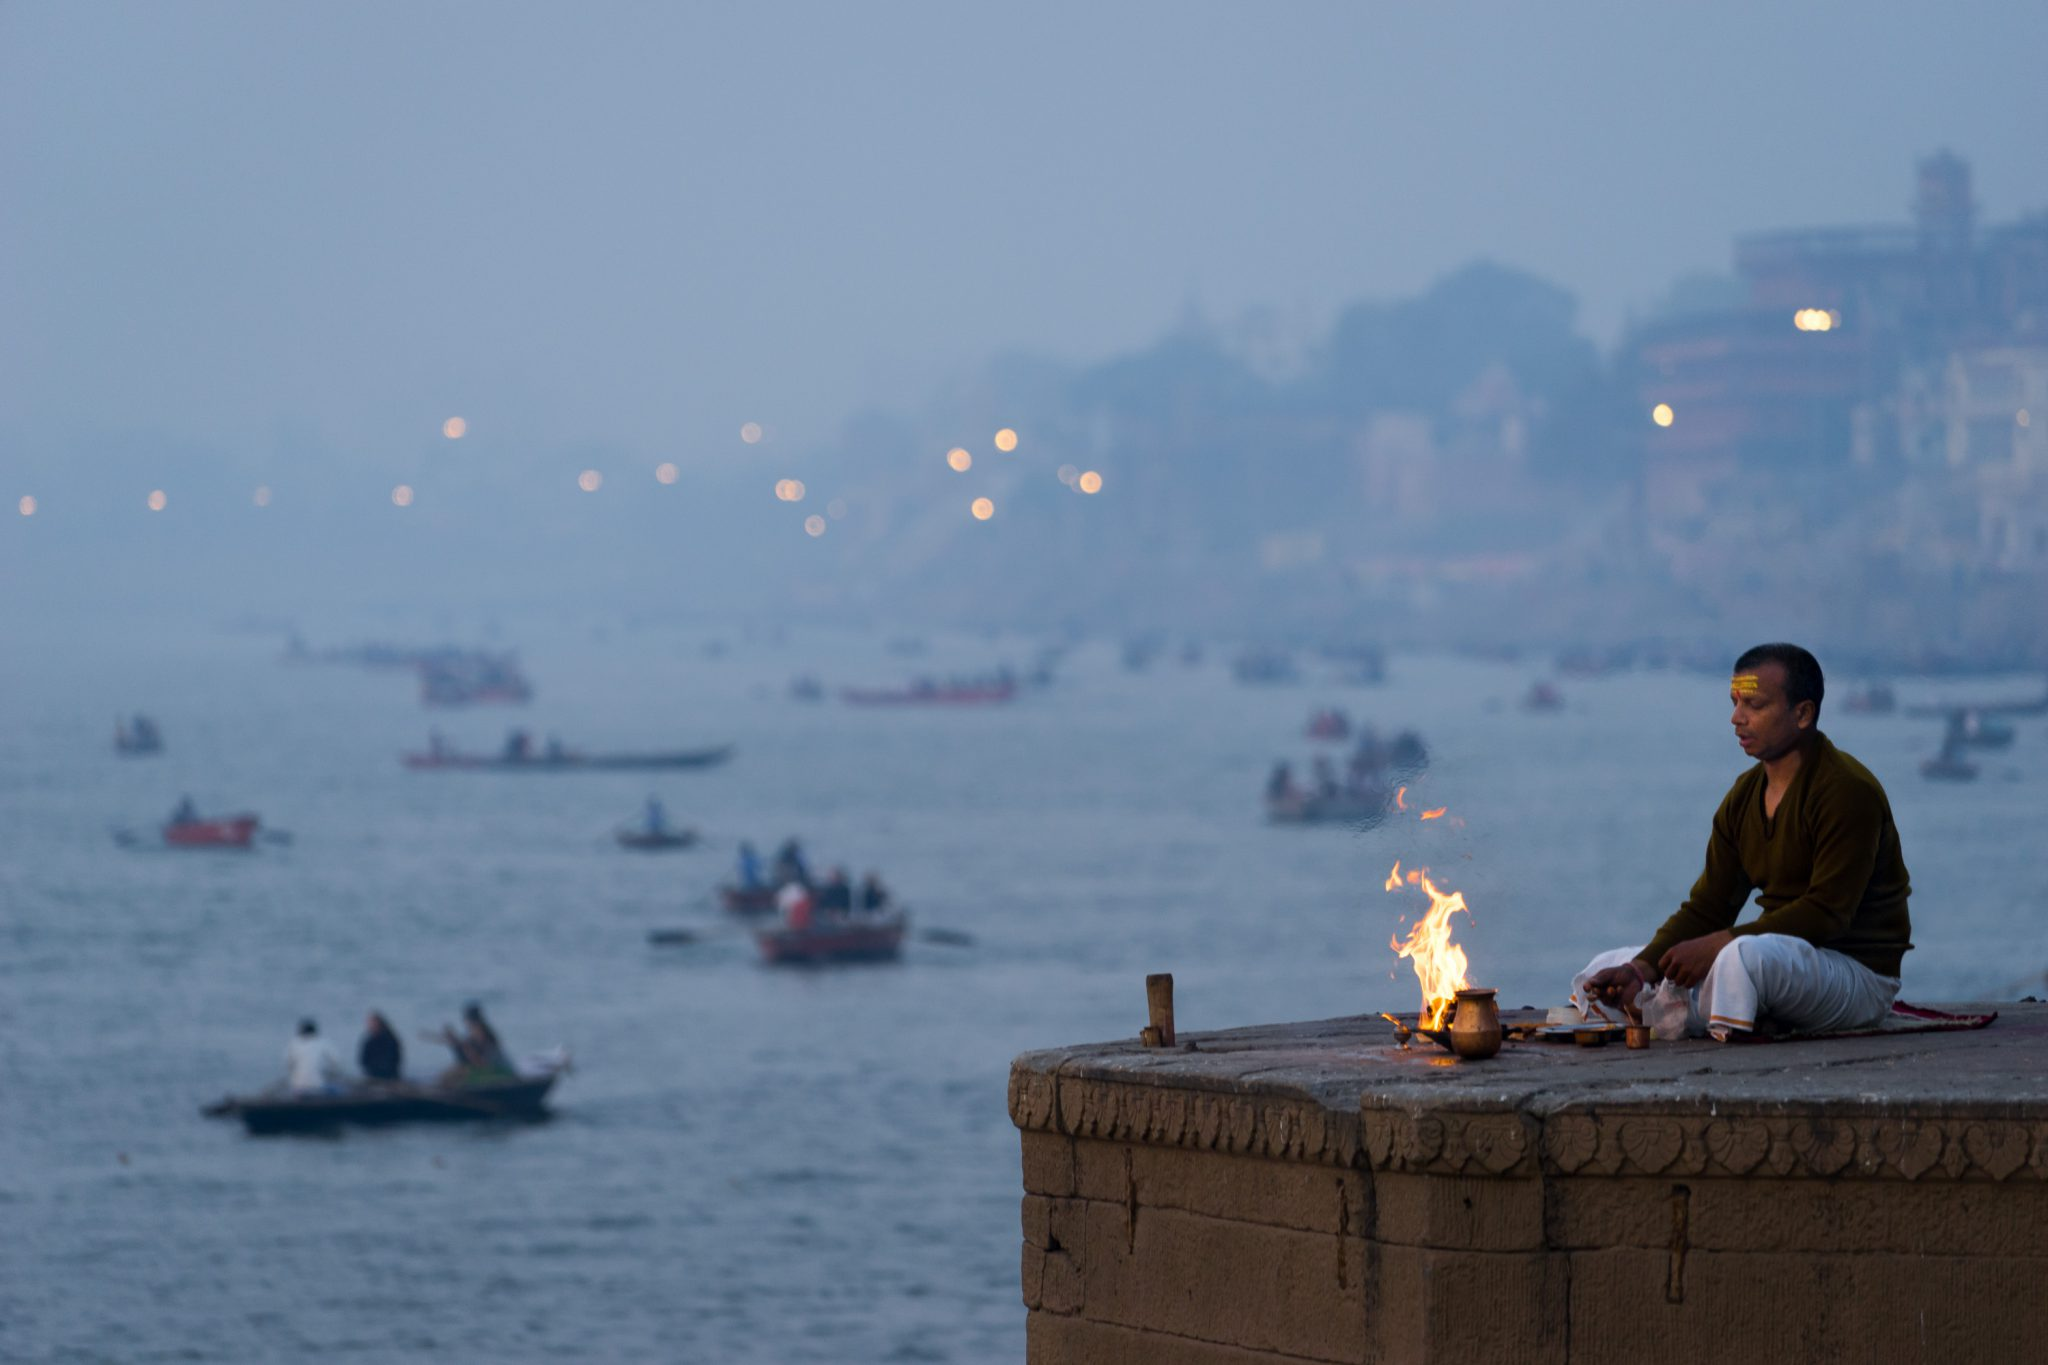 Morning On The Ganges, Varanasi, India